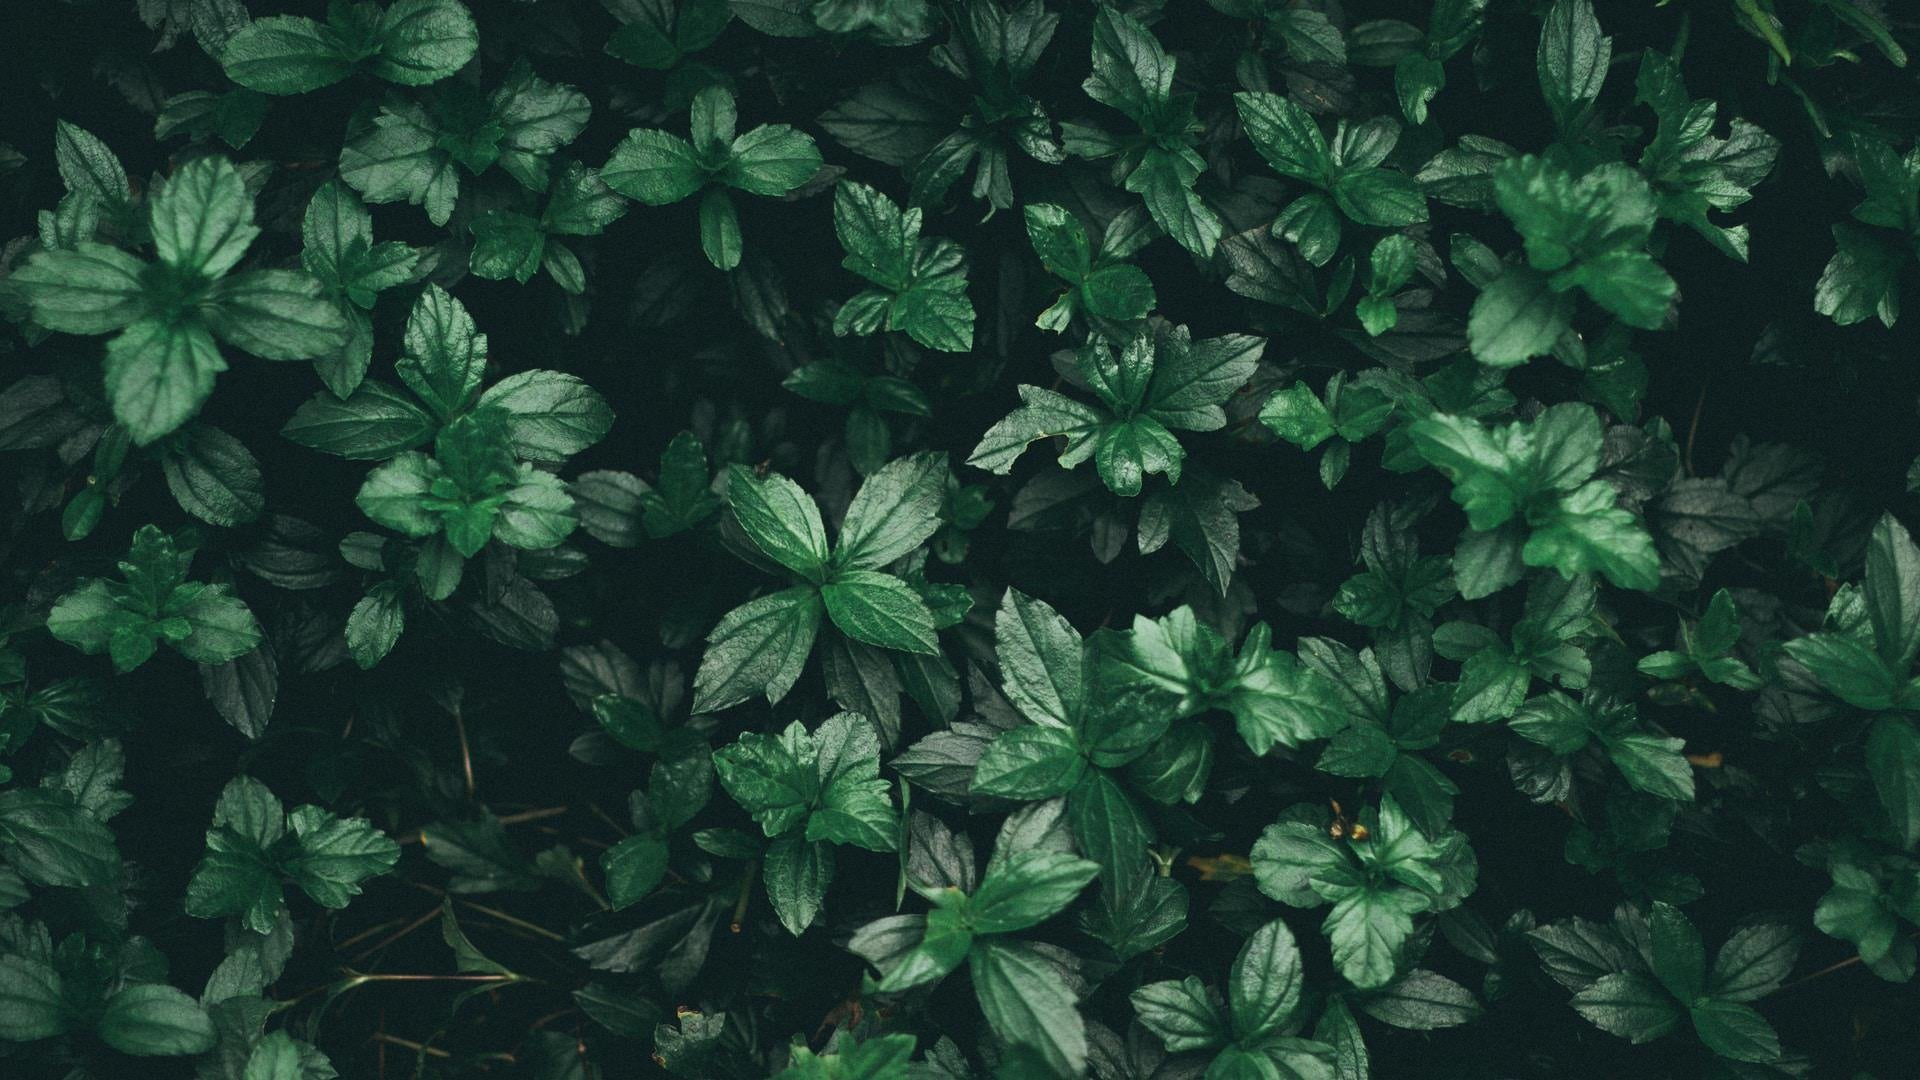 Green Aesthetic Wallpaper Image